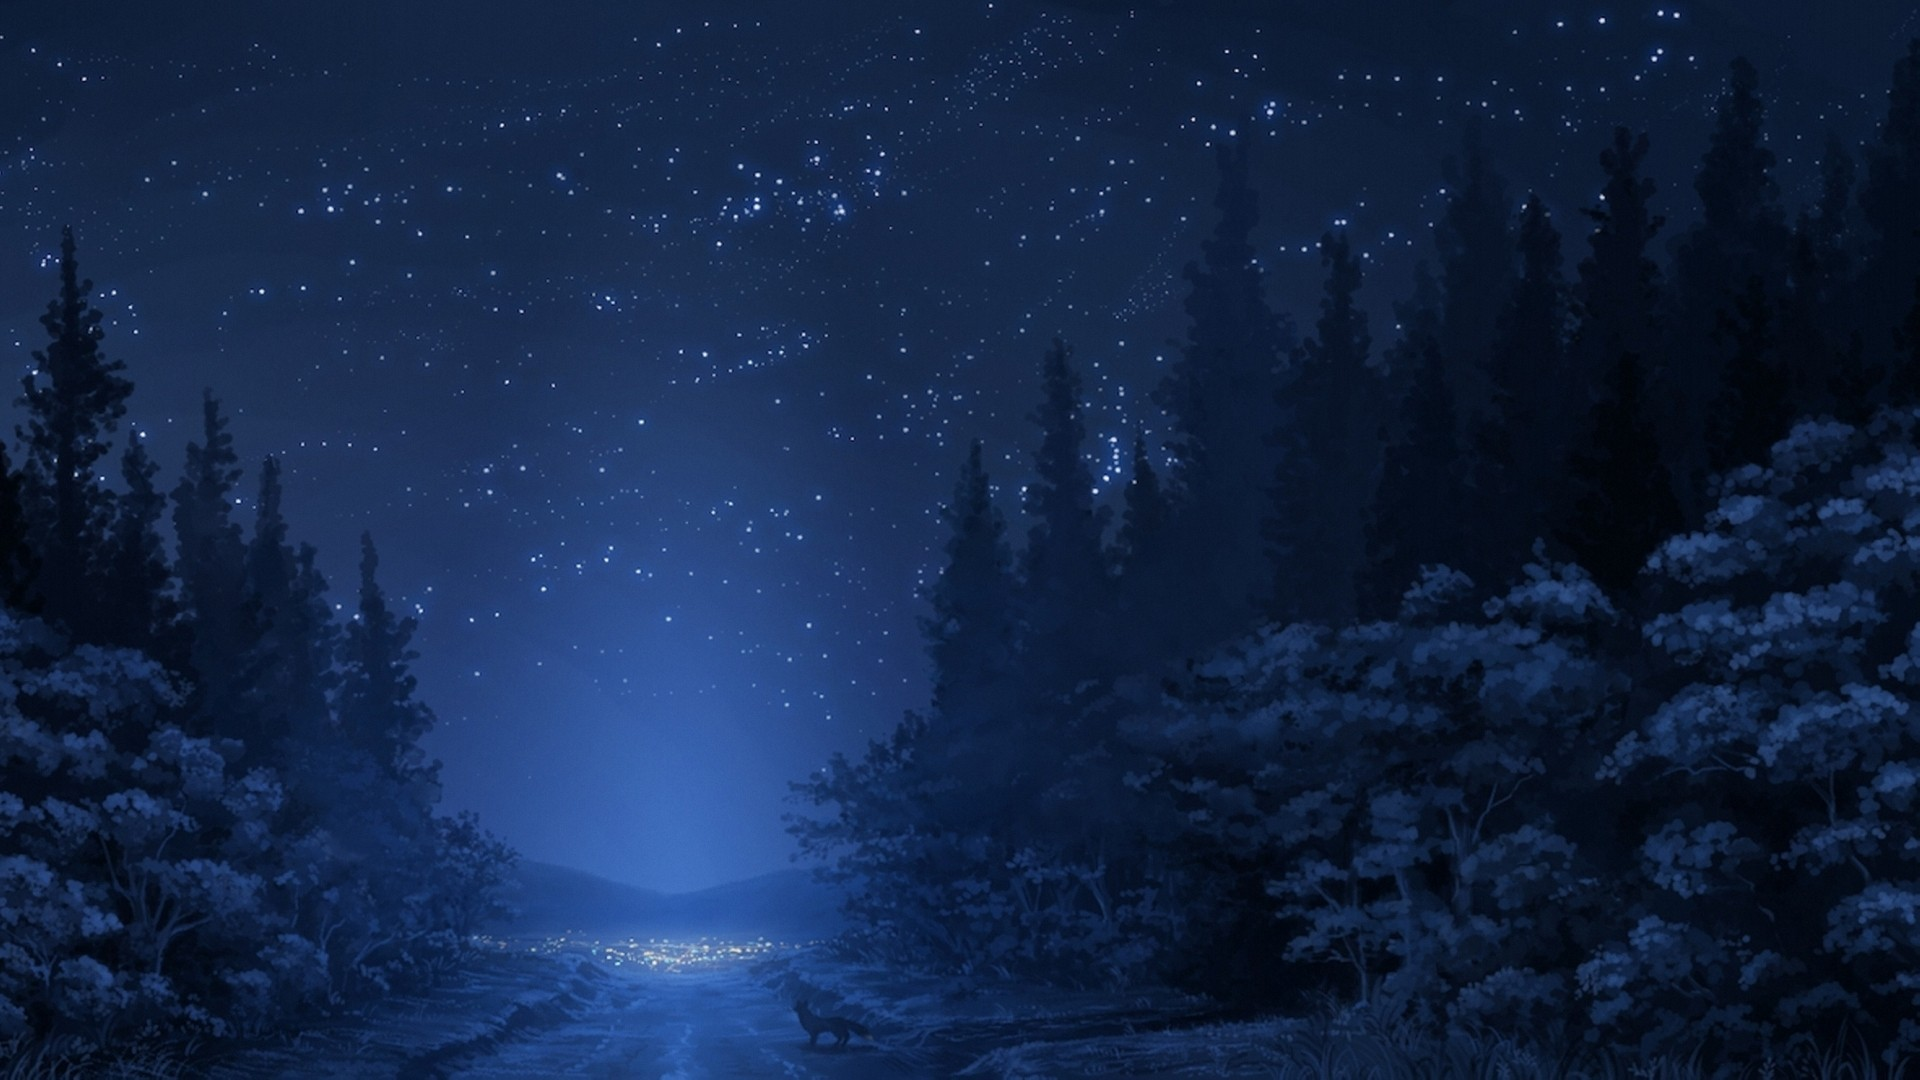 Road Night Forest Stars Download Wallpaper